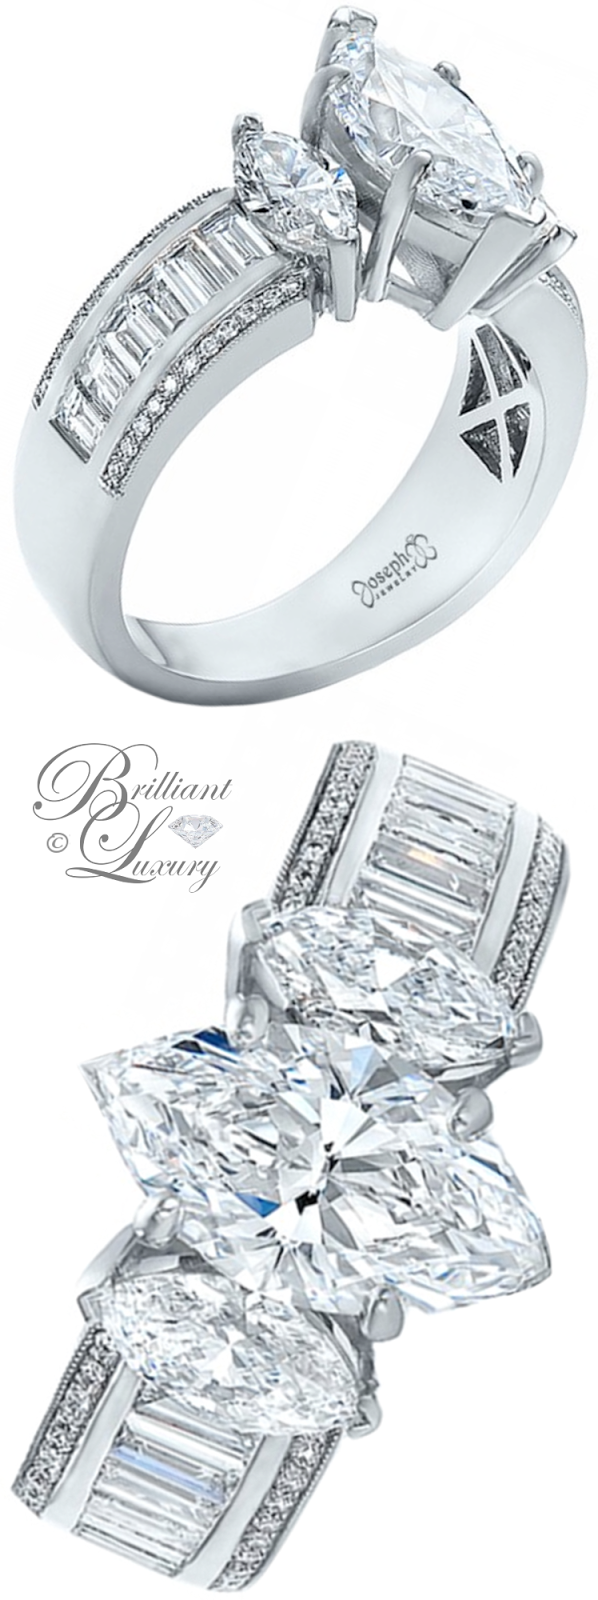 Brilliant Luxury ♦ Joseph Jewelry Custom Three Stone Marquise and Baguette Diamond Engagement Ring